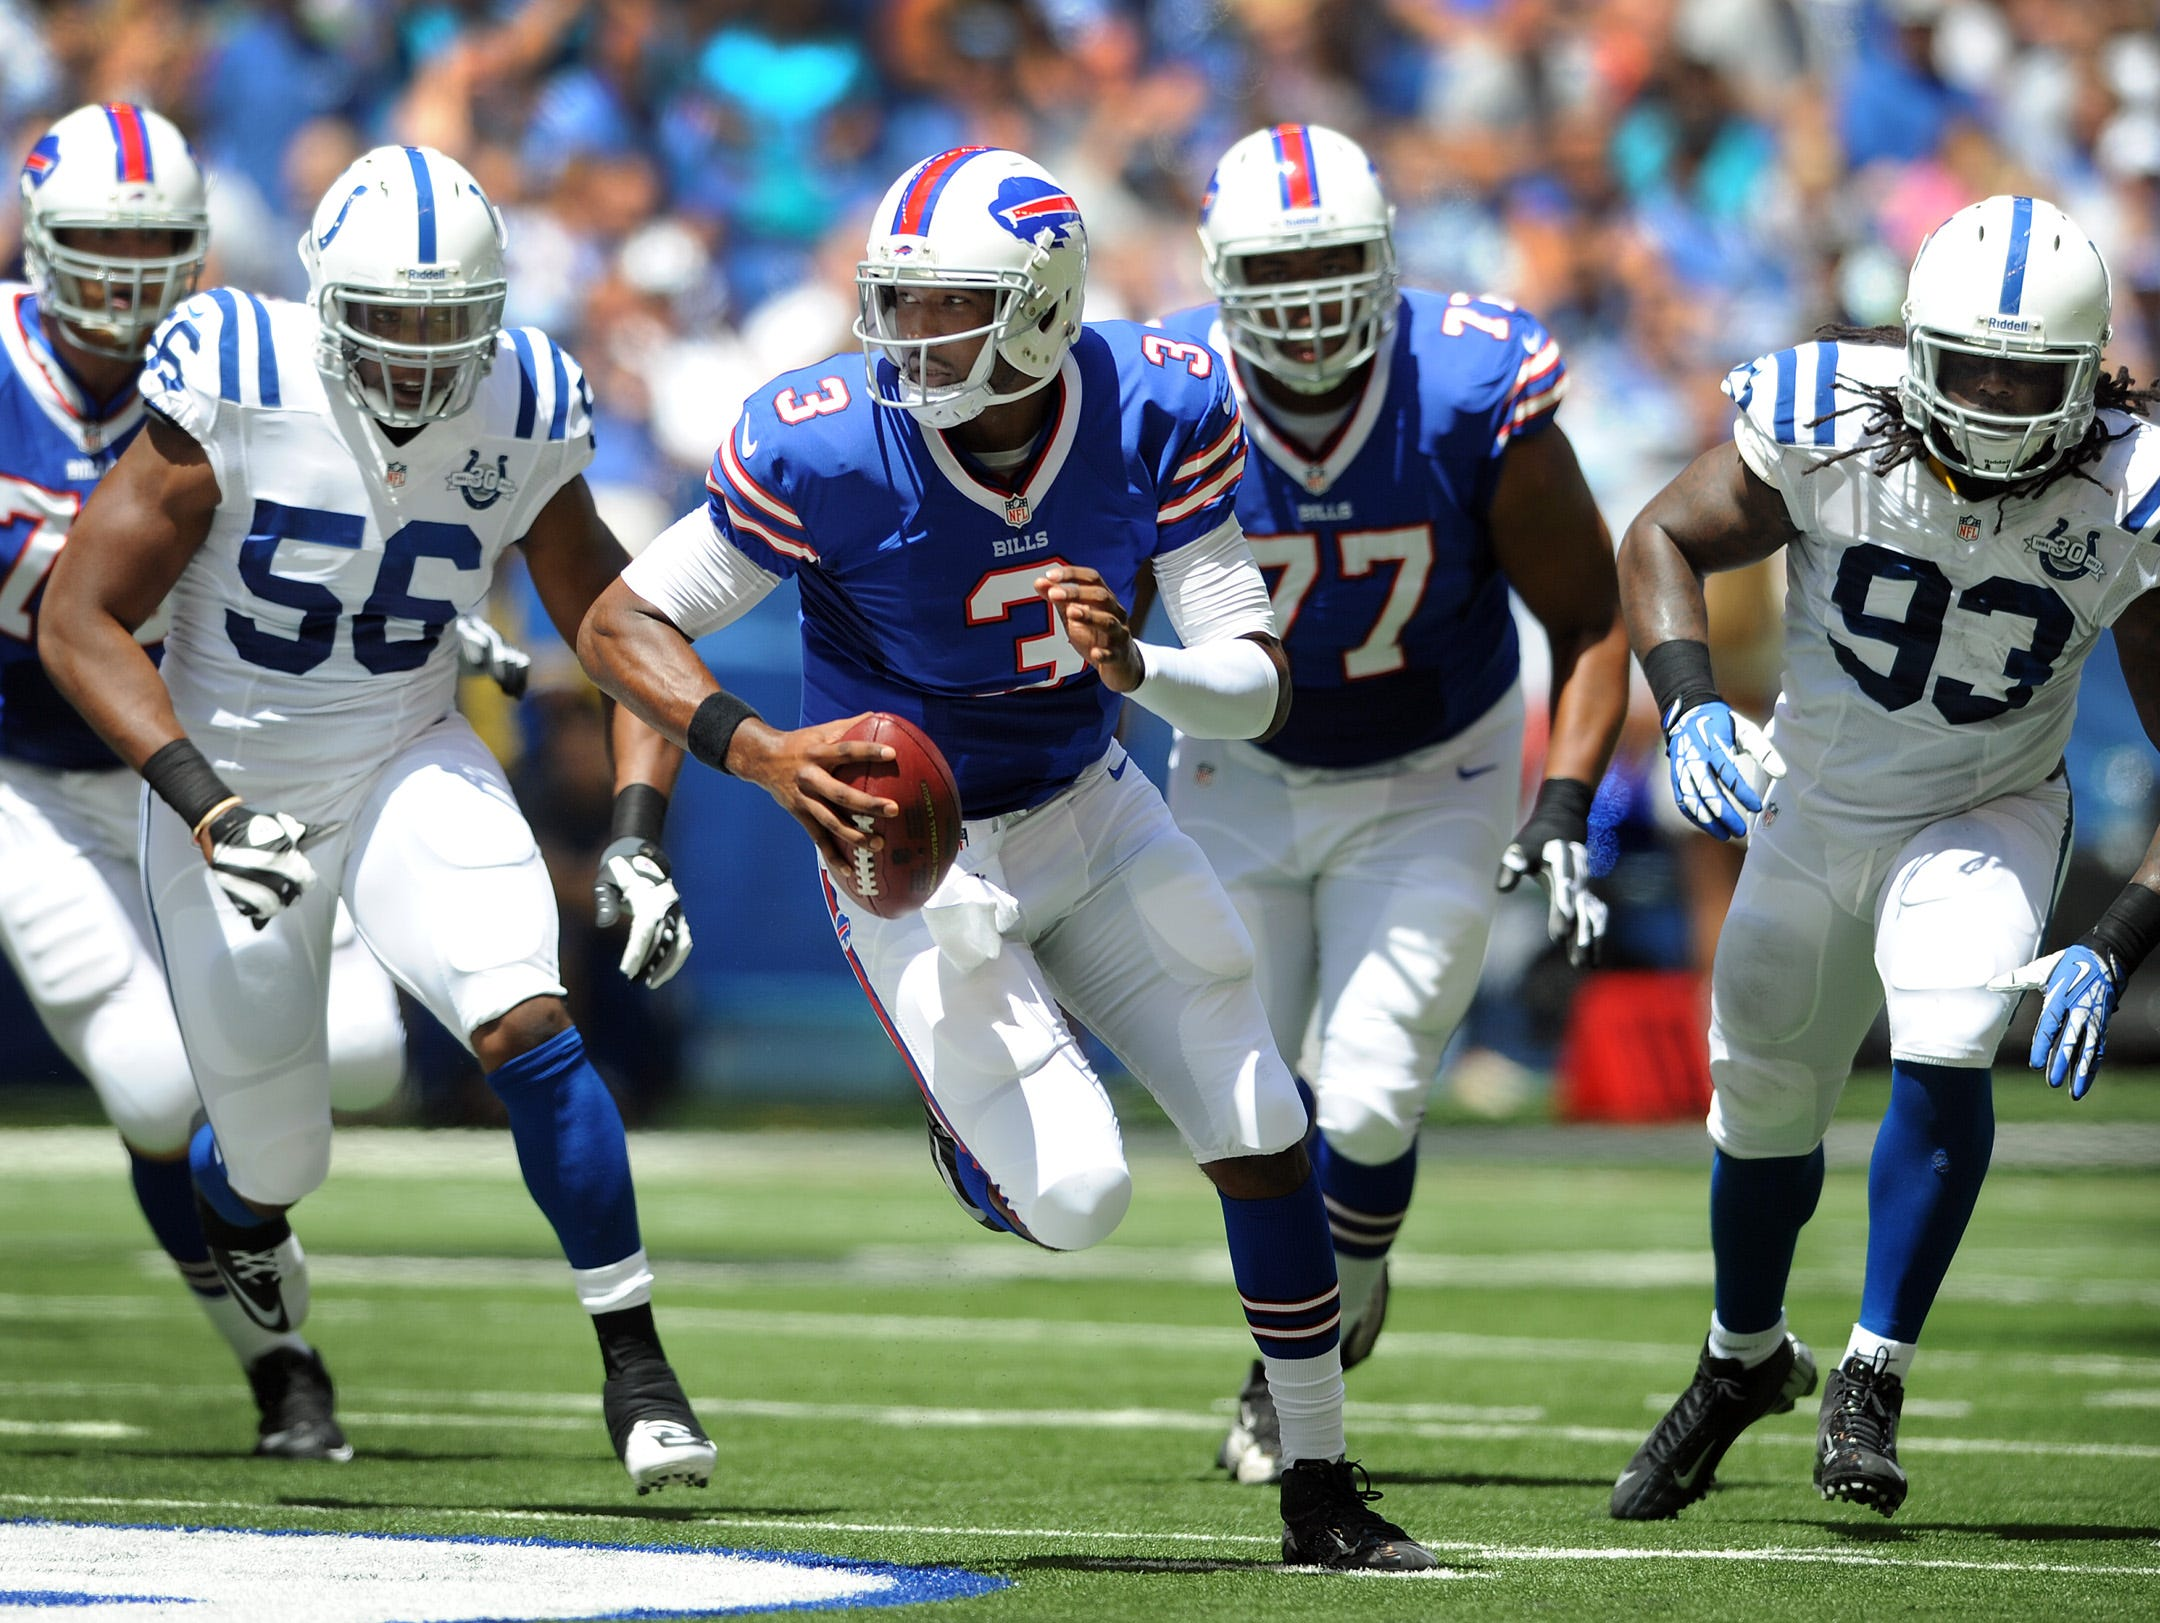 Bell: Bills rookie QB EJ Manuel headed in right direction